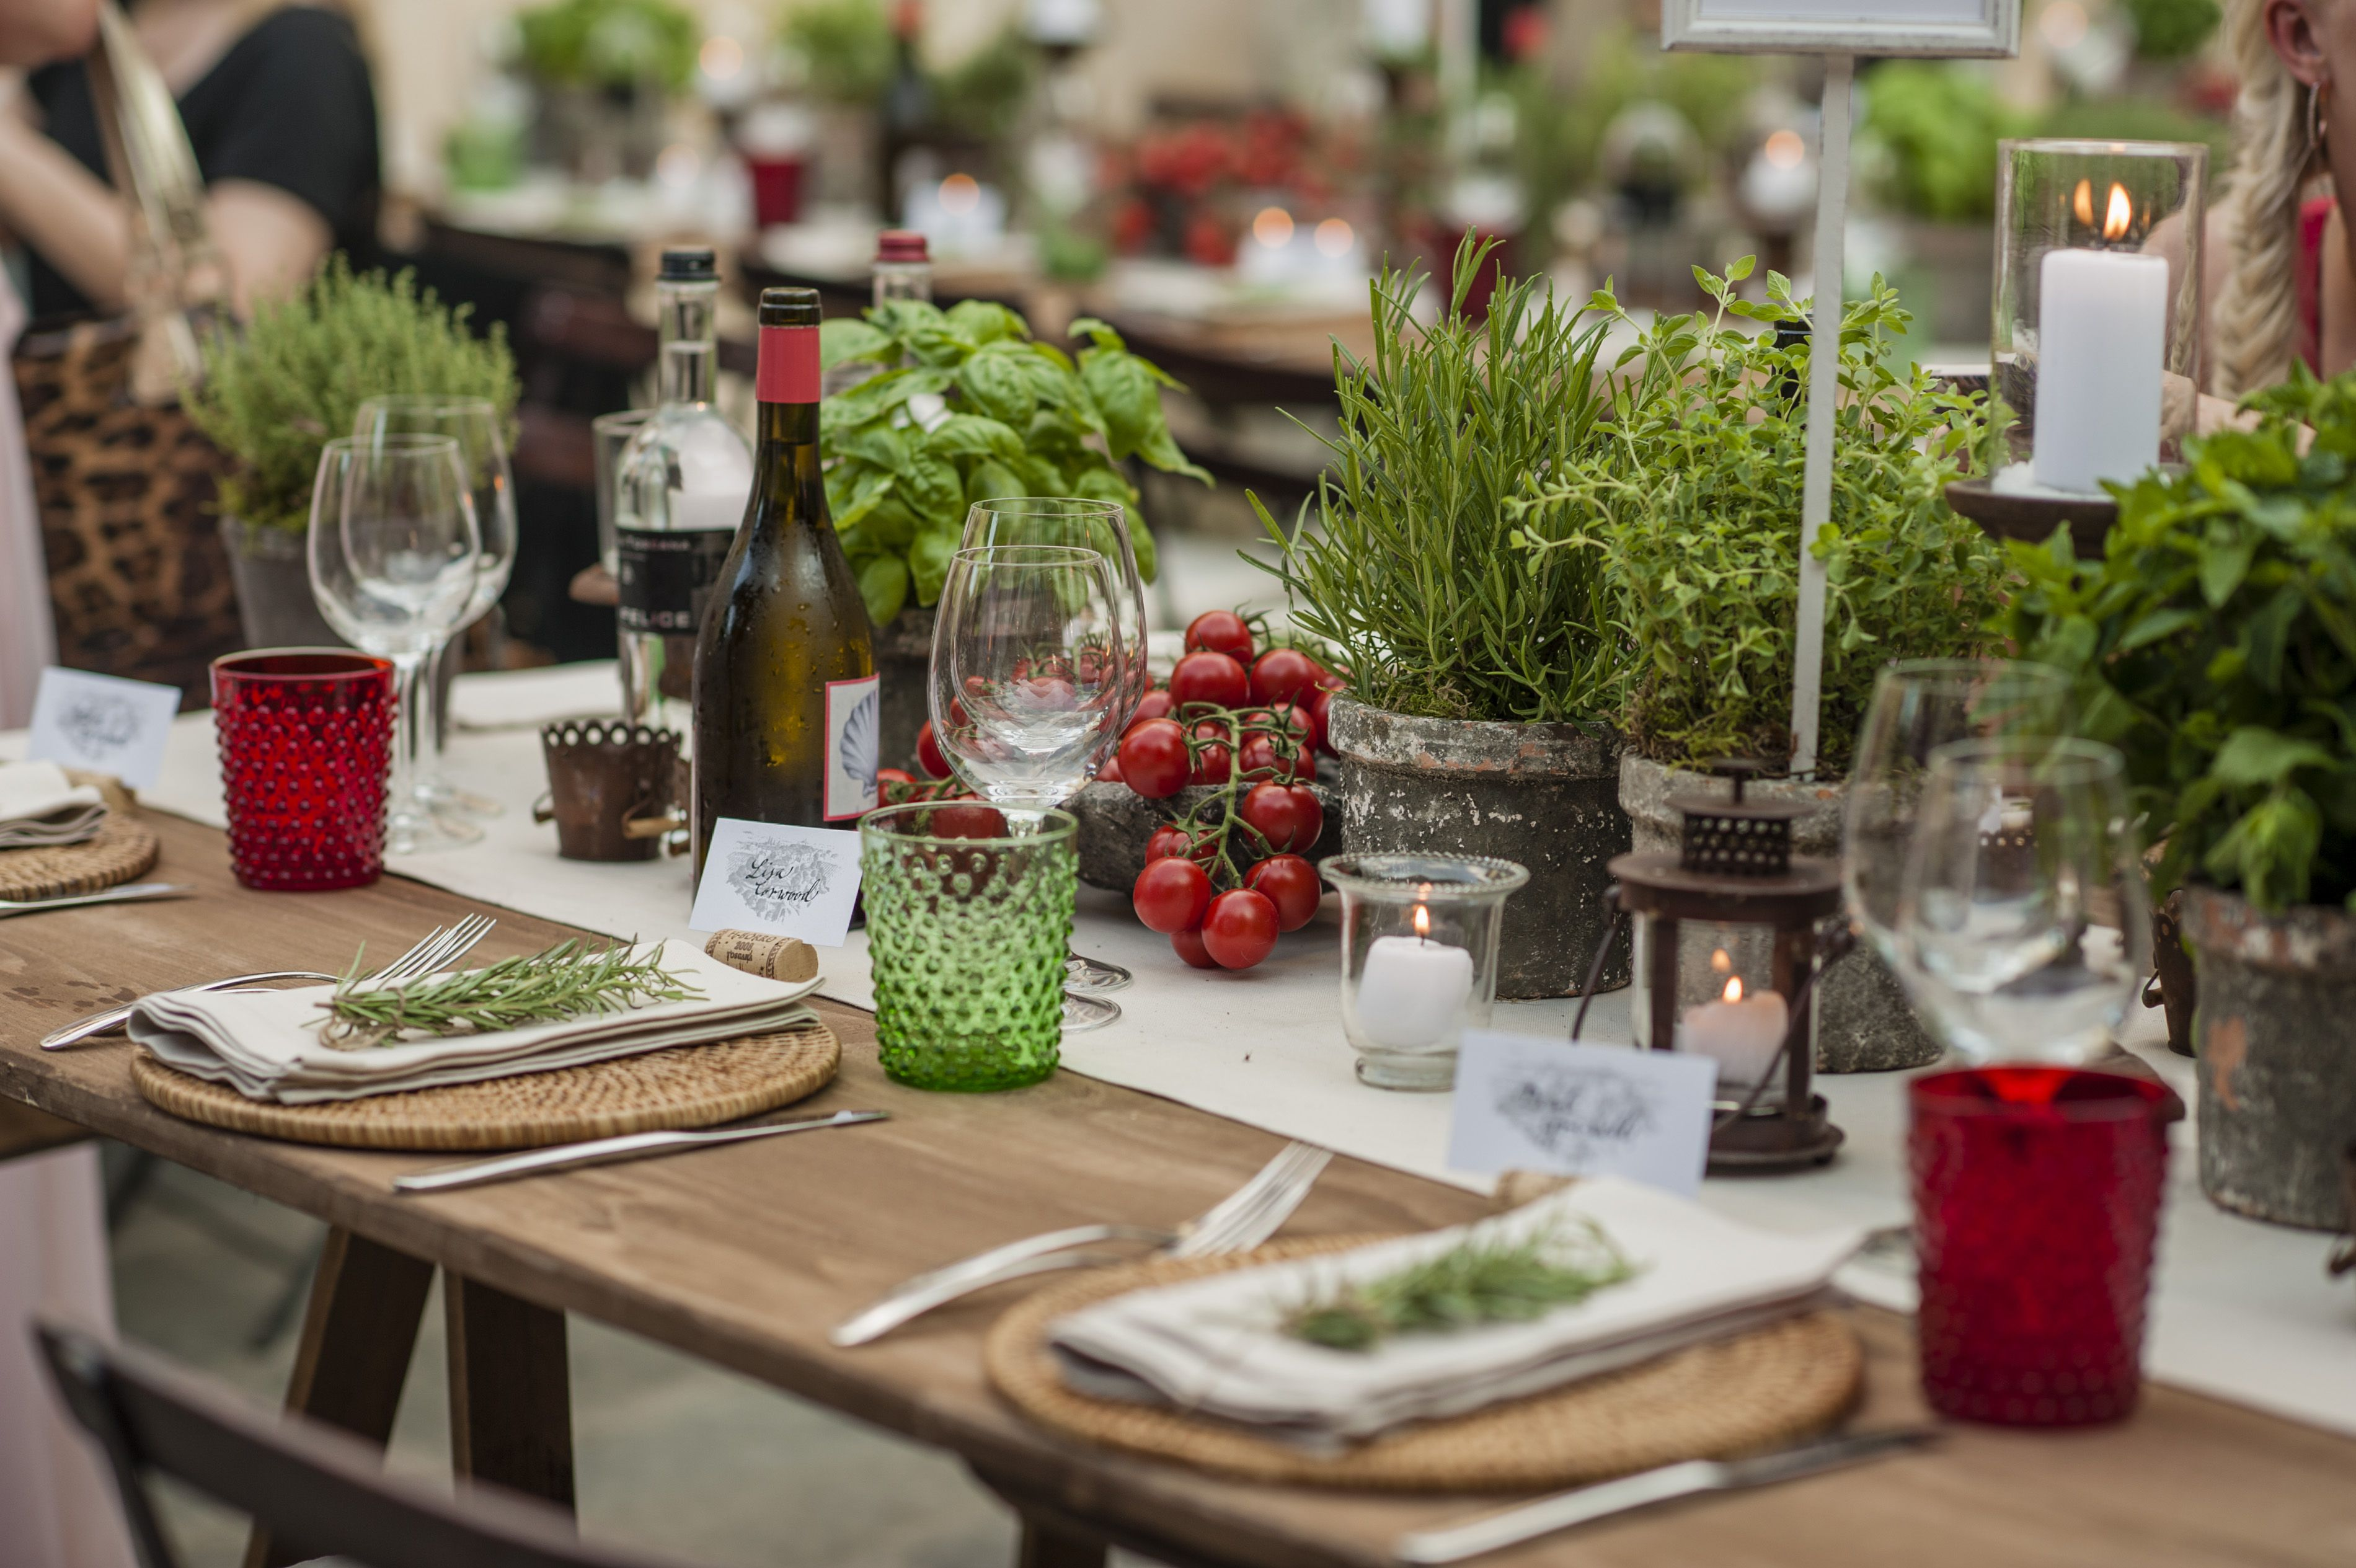 Rustic Italian Village Party In Tuscany Herbs Tomatoes And Fresh